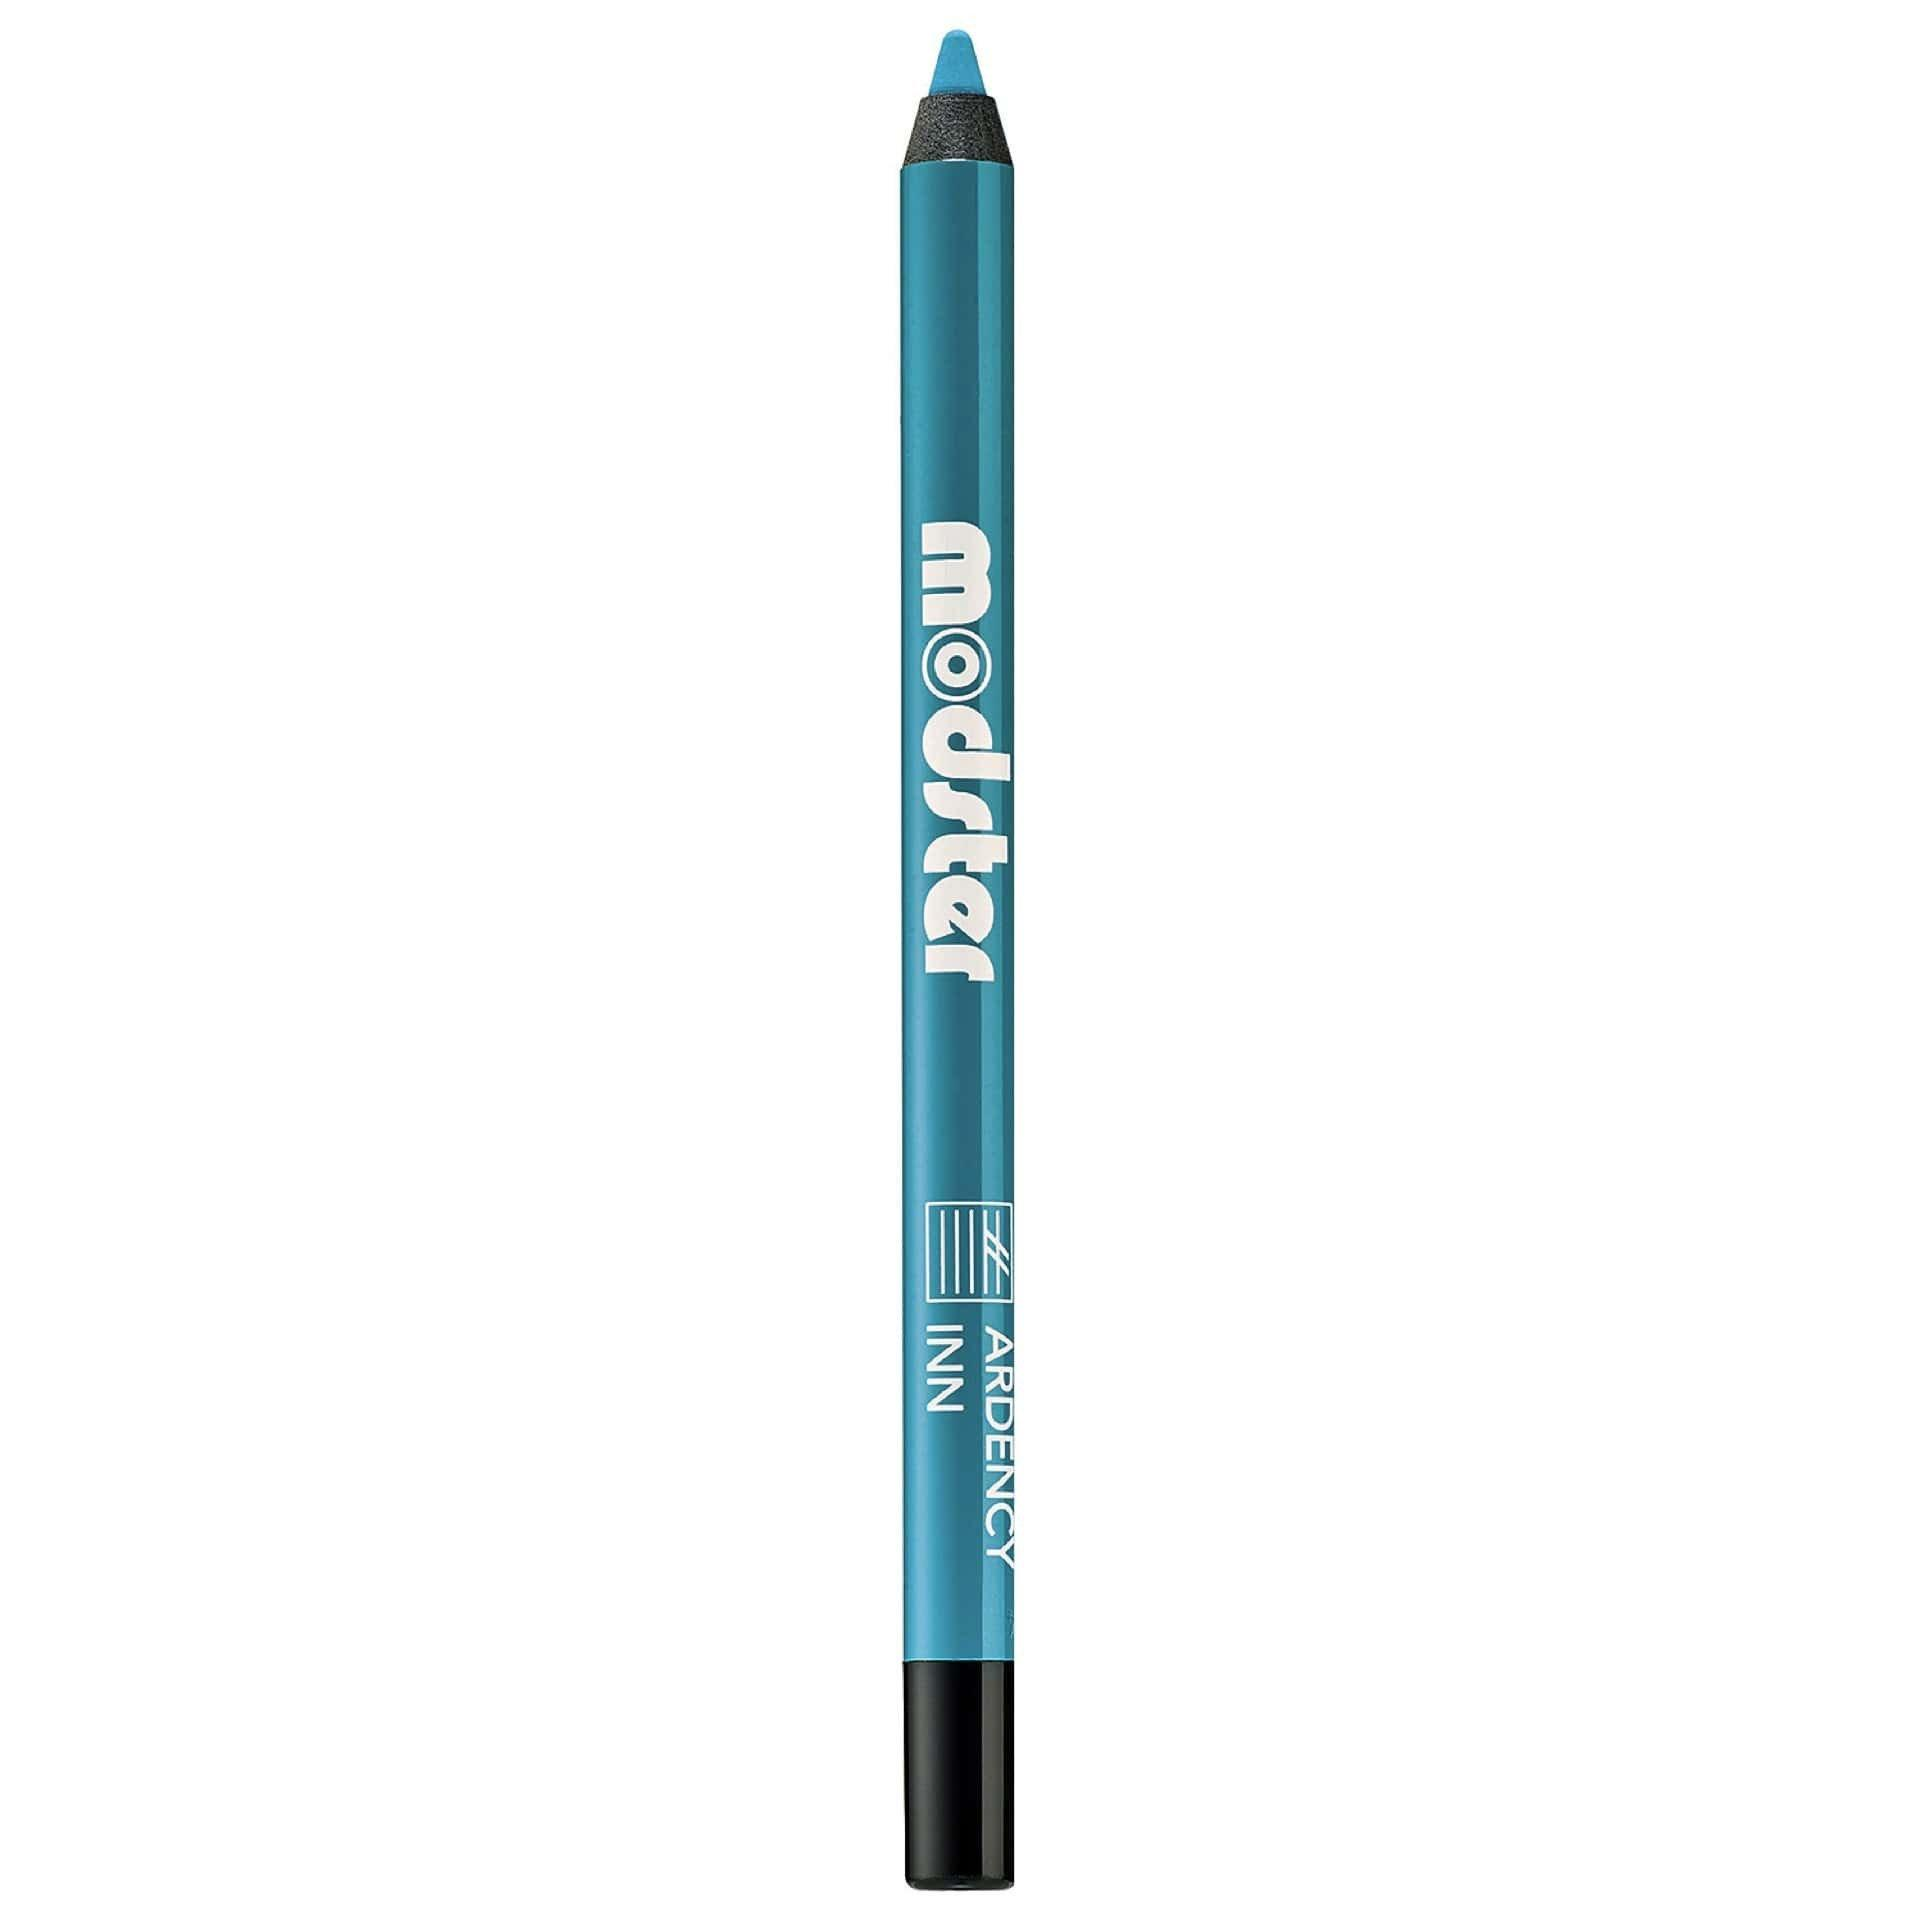 Ardency Inn Modster Smooth Ride Supercharged Eyeliner True Blue